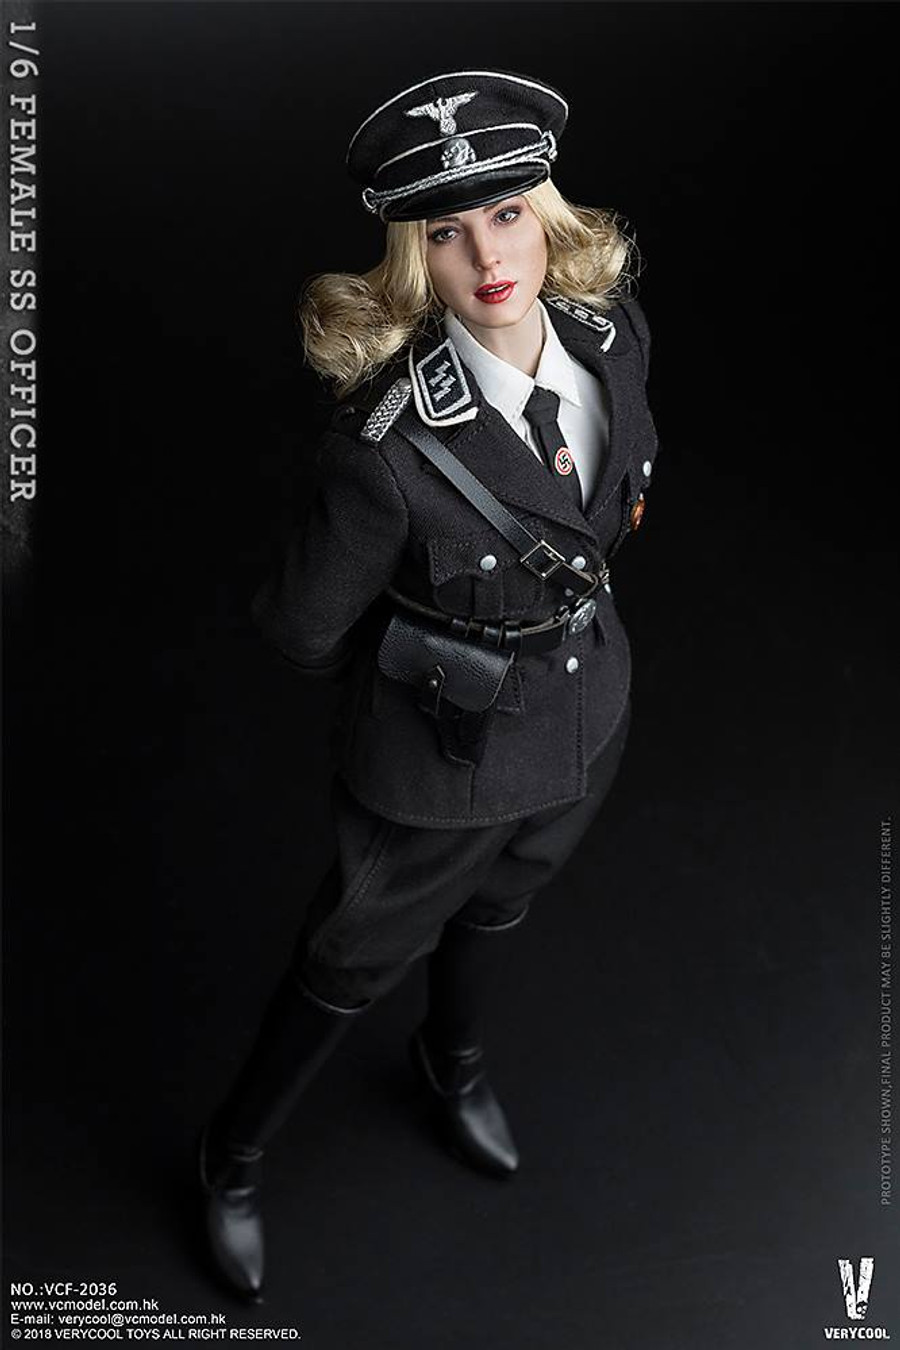 Very Cool - Female SS Officer